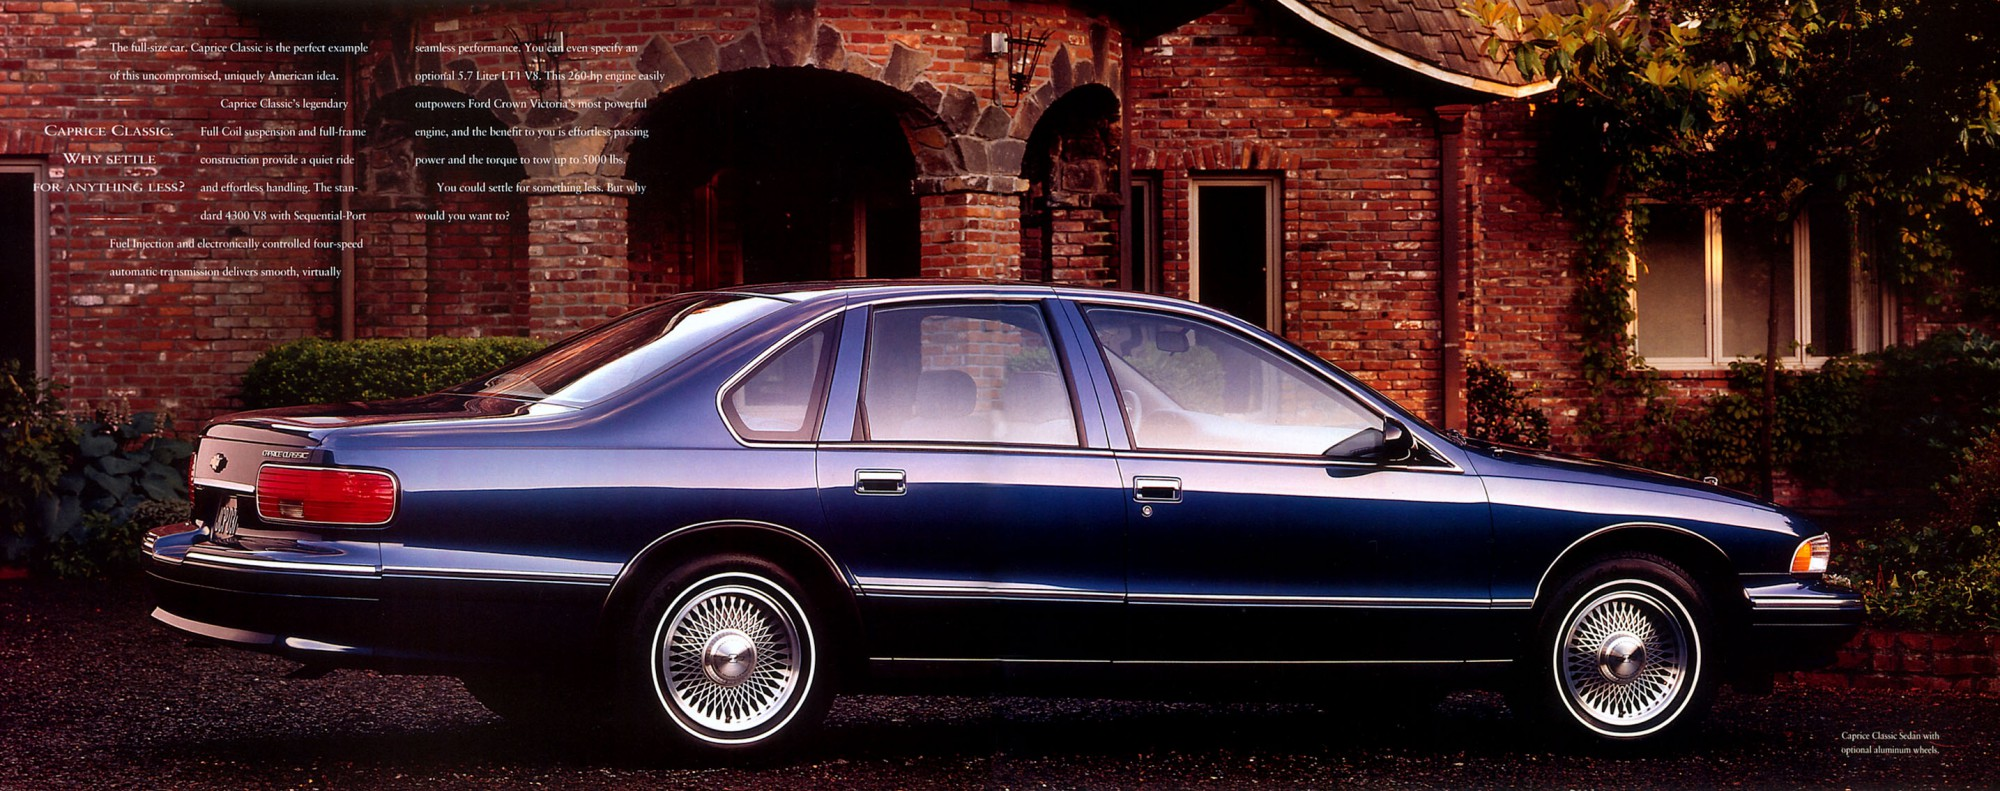 1995 Chevrolet Caprice Classic-04-05 | Mike's Digital ClipBook